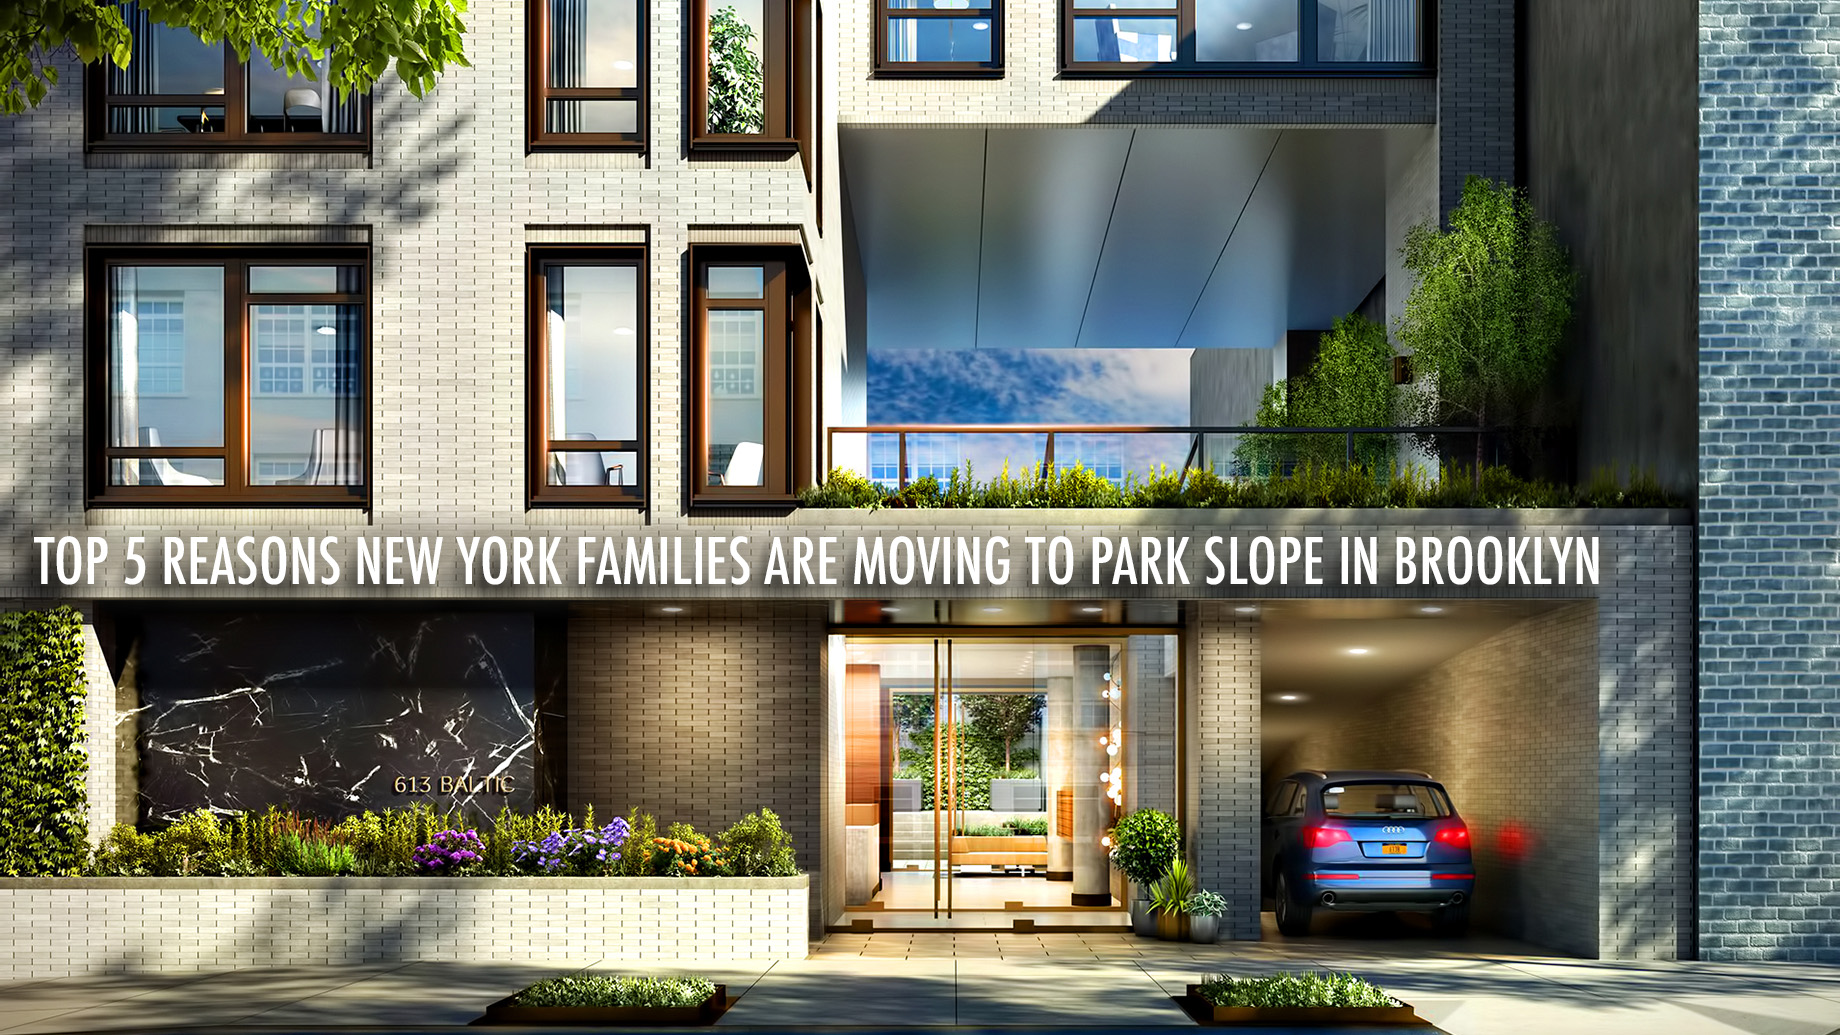 Top 5 Reasons New York Families Are Moving to Park Slope in Brooklyn